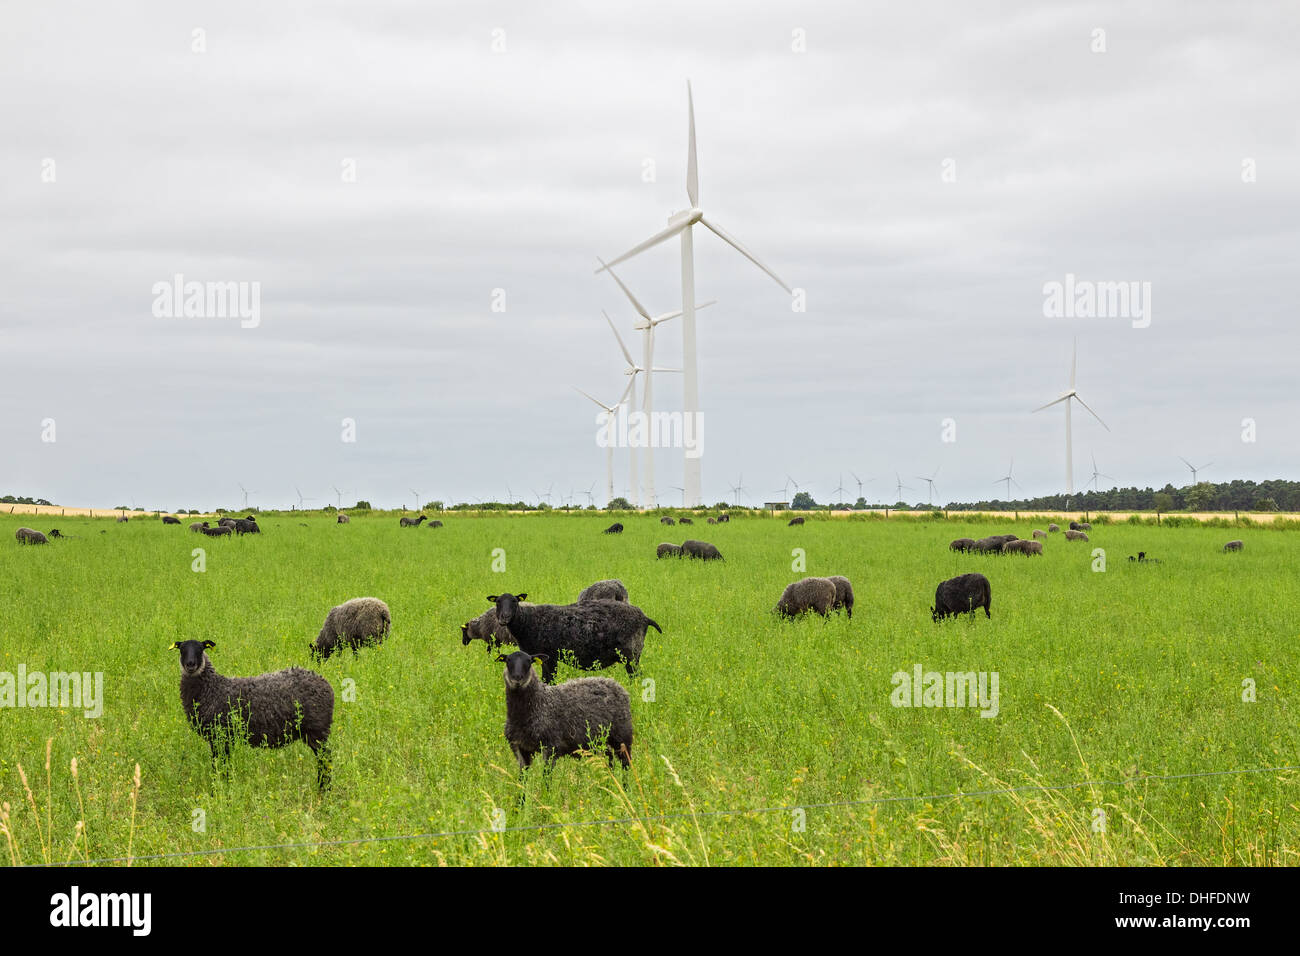 Sheep on green pasture, with wind turbines in a distance. Gotland, Sweden. - Stock Image